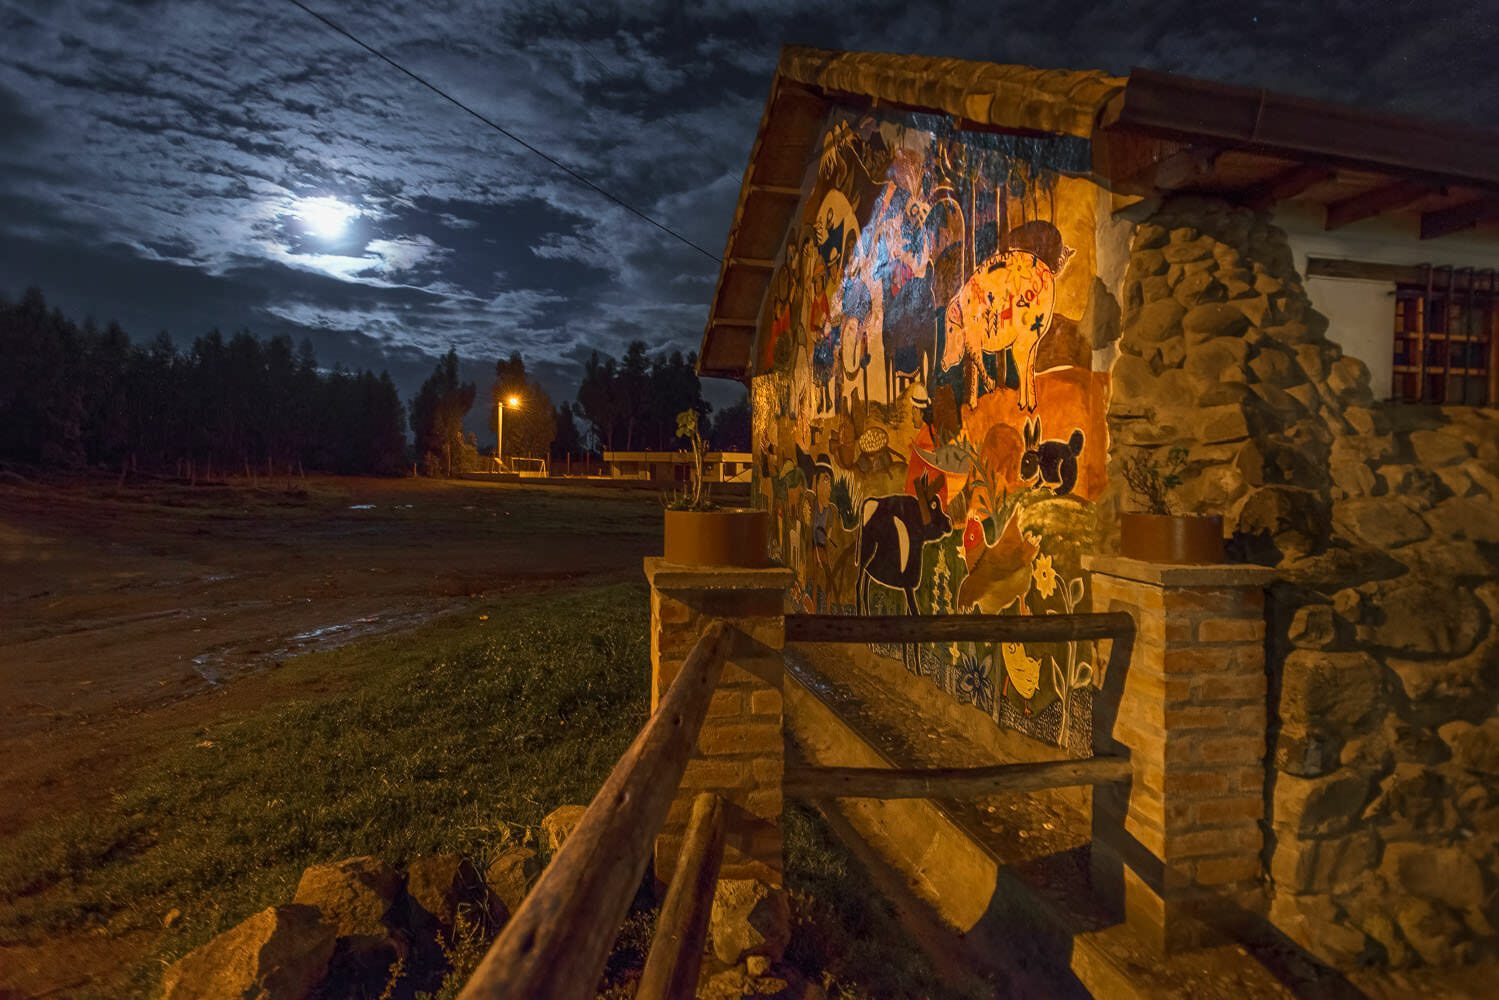 The moonlighted rear facade of the La Moya church decored with typical Andean painting